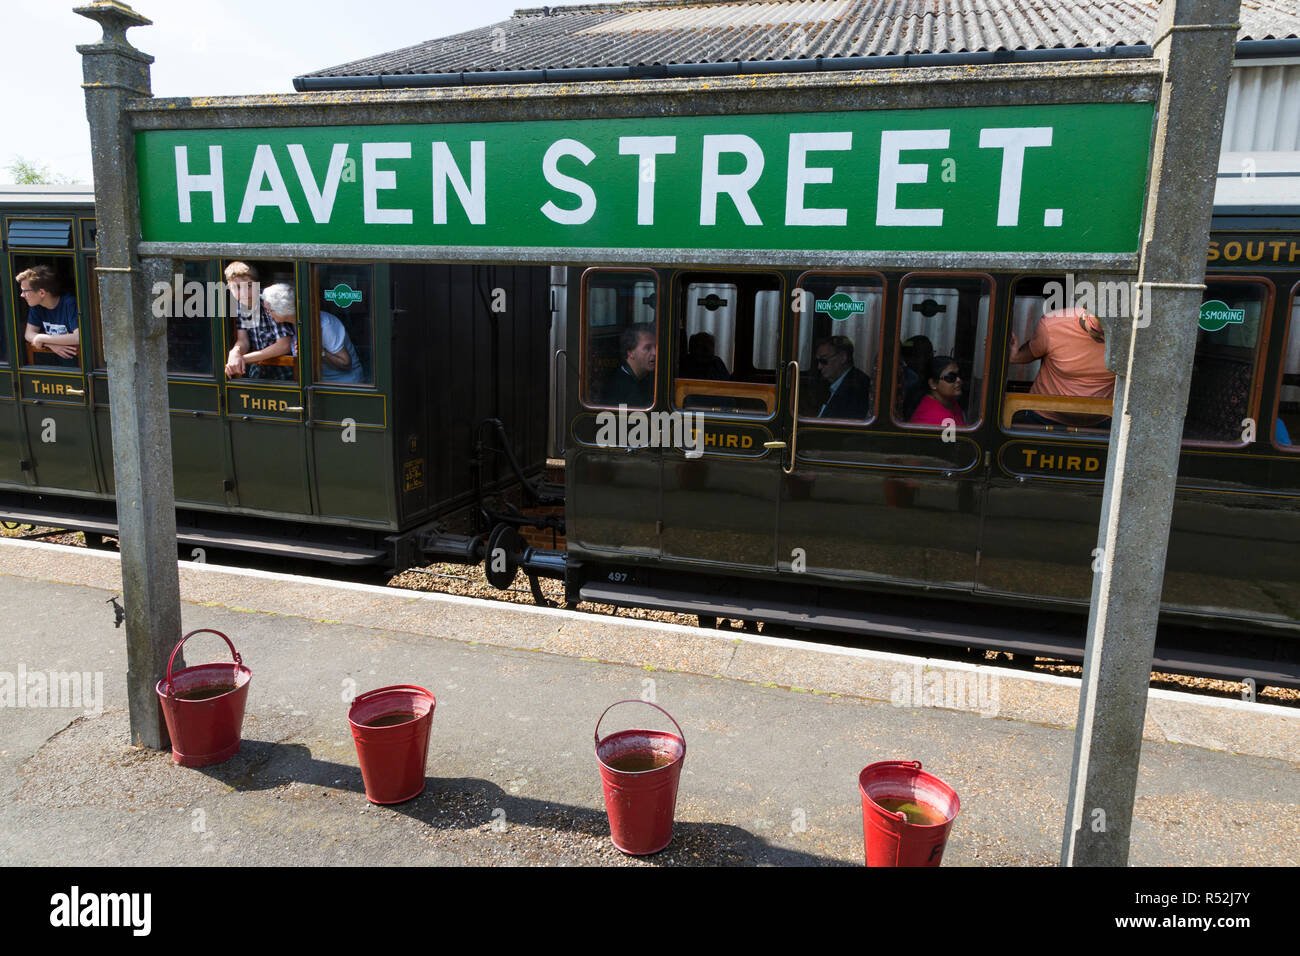 Third 3rd class train carriage on the historic Isle of Wight steam Railway line, seen with Havenstreet Main Road, Haven street station sign. - Stock Image